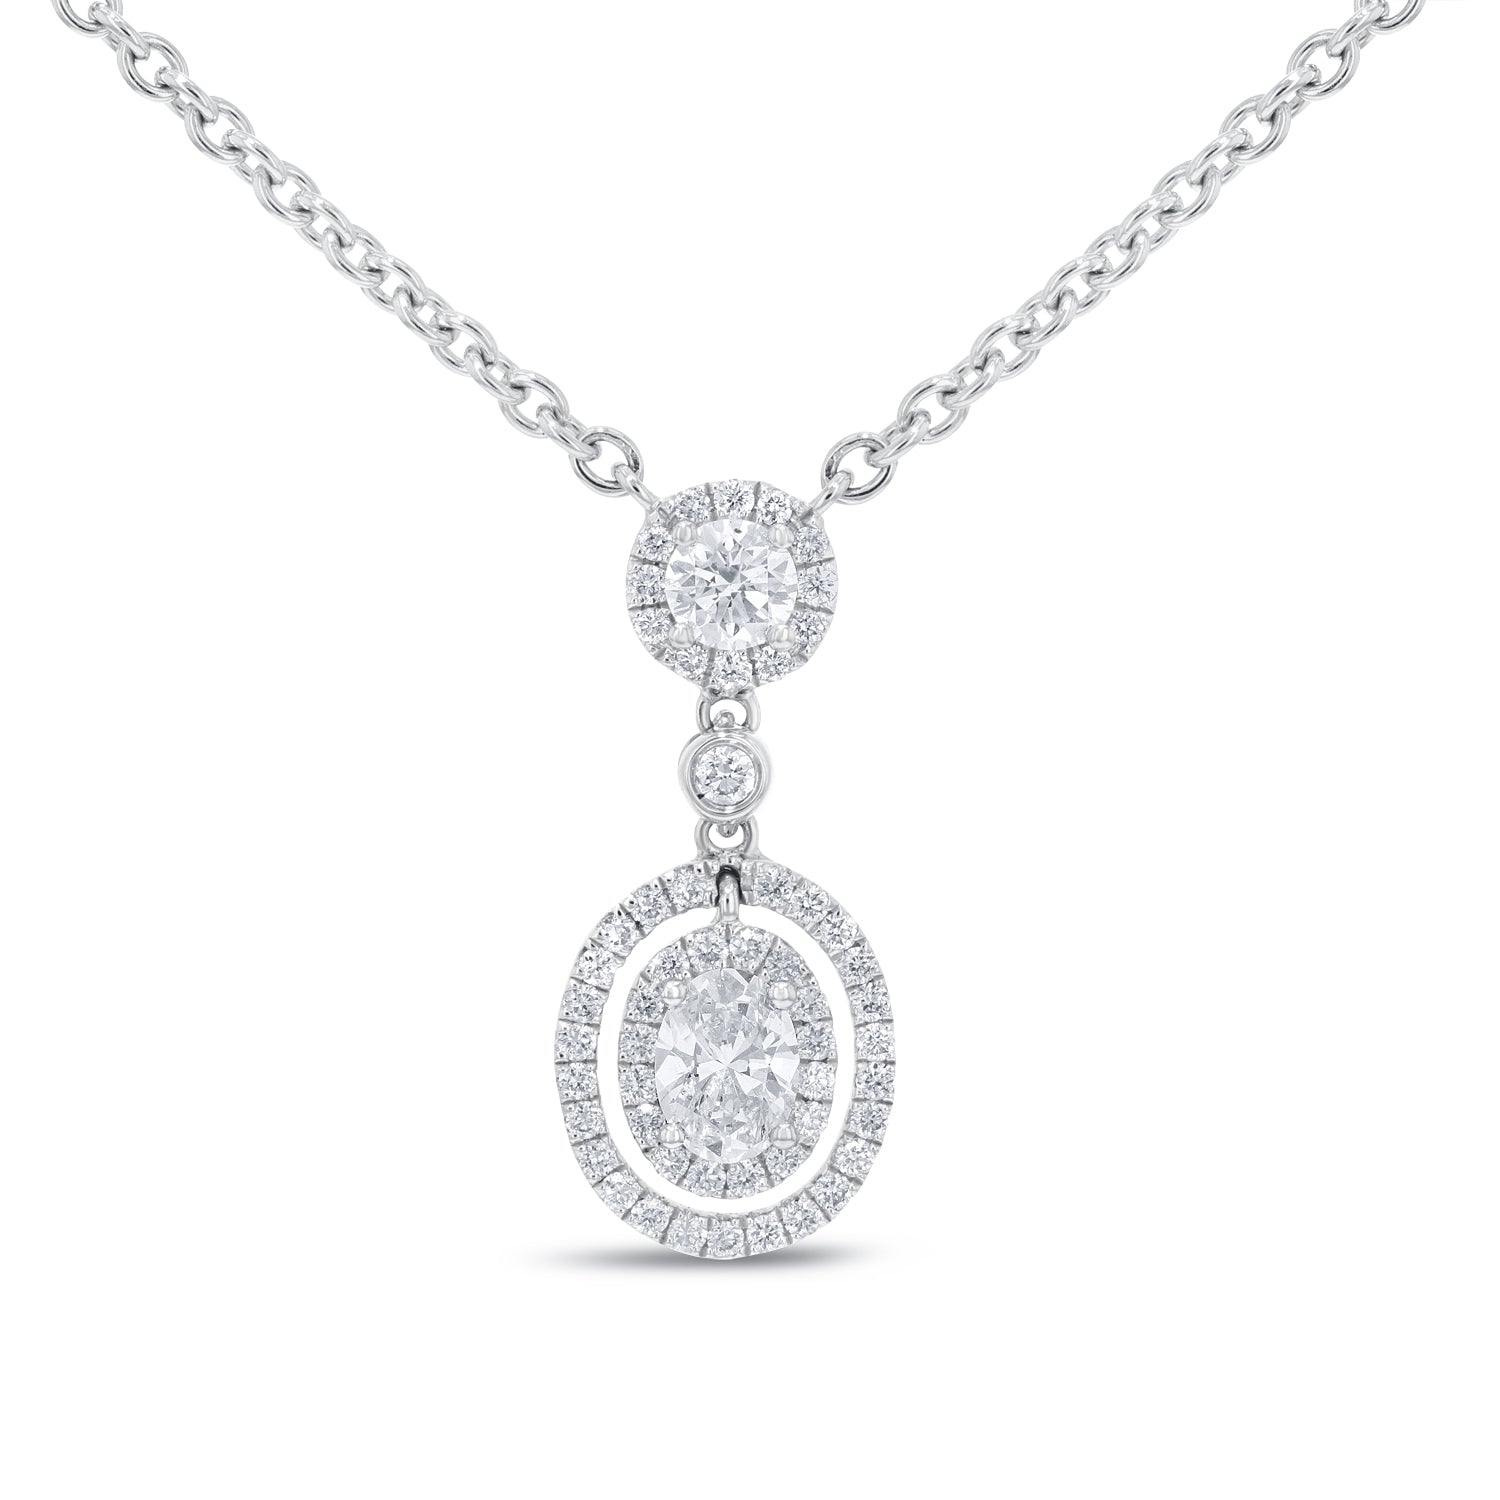 18K White Gold Diamond Pendant, 1.41 Carats